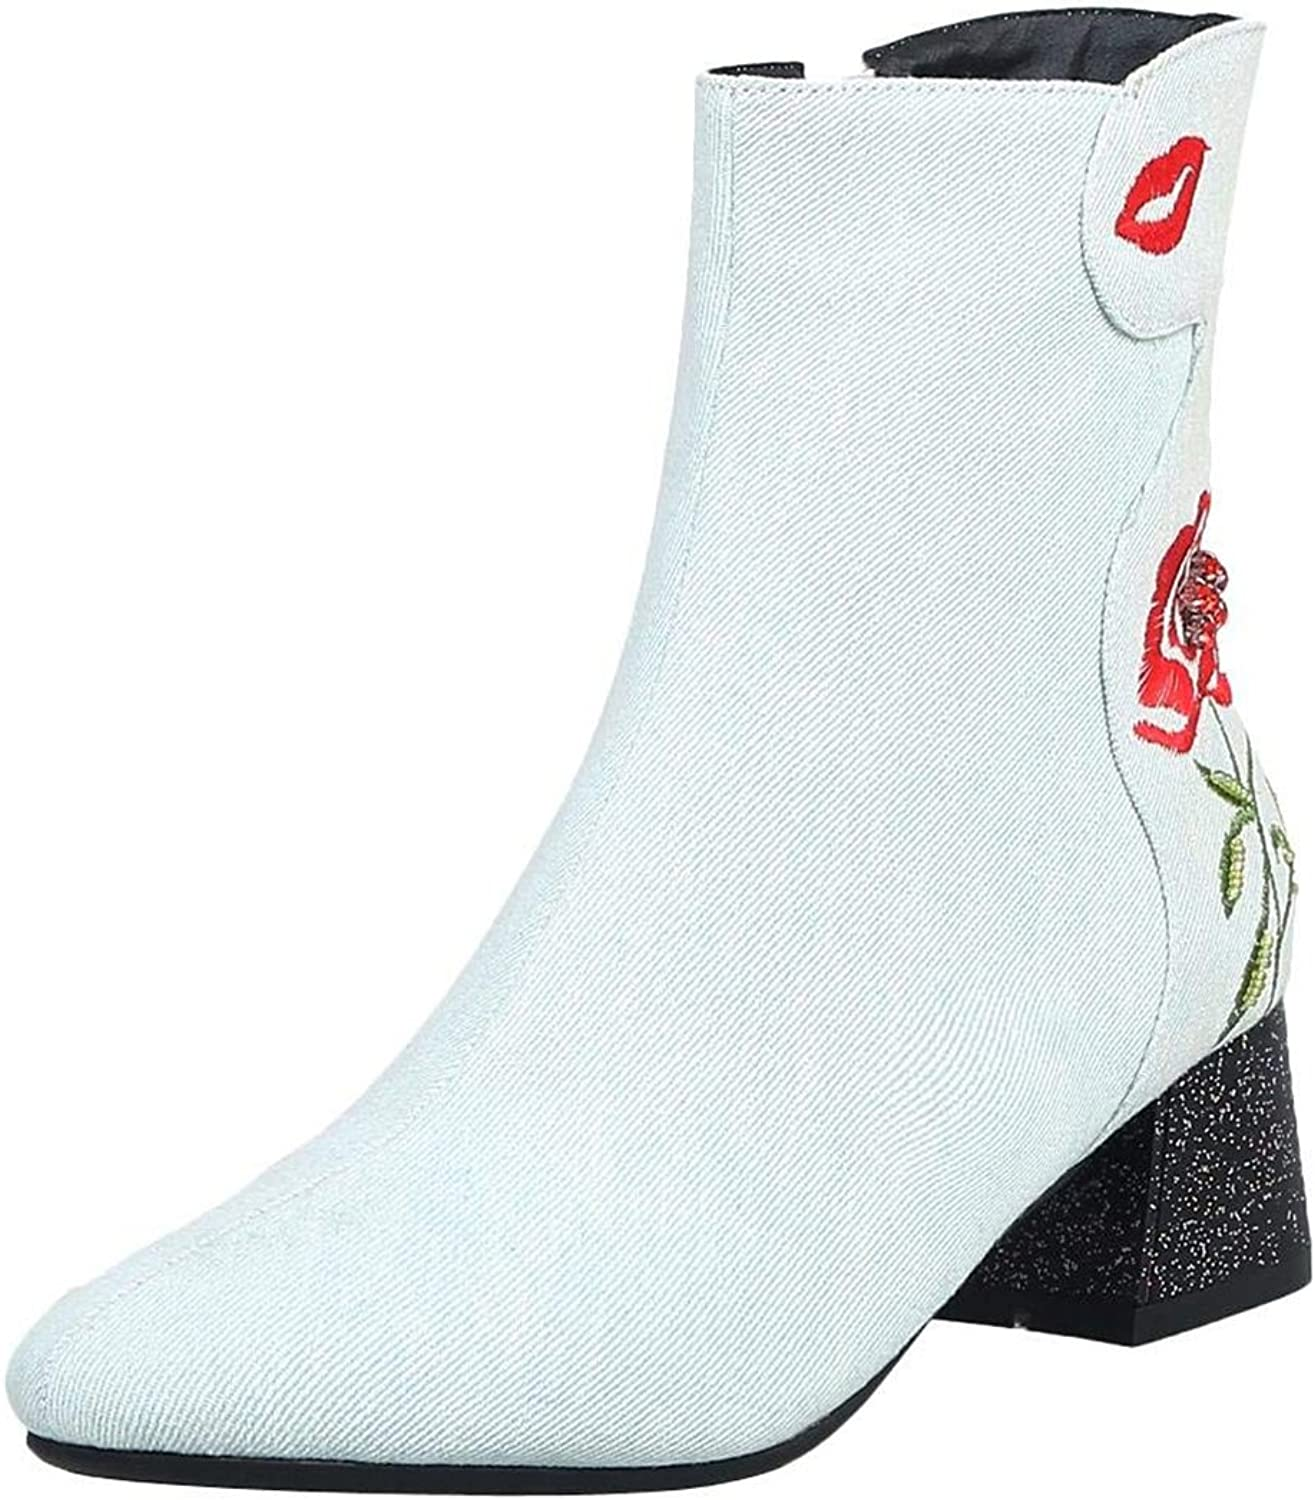 Artfaerie Women's Denim Ankle Boots Block Heel Plush Booties with Embroidery Winter Warm shoes